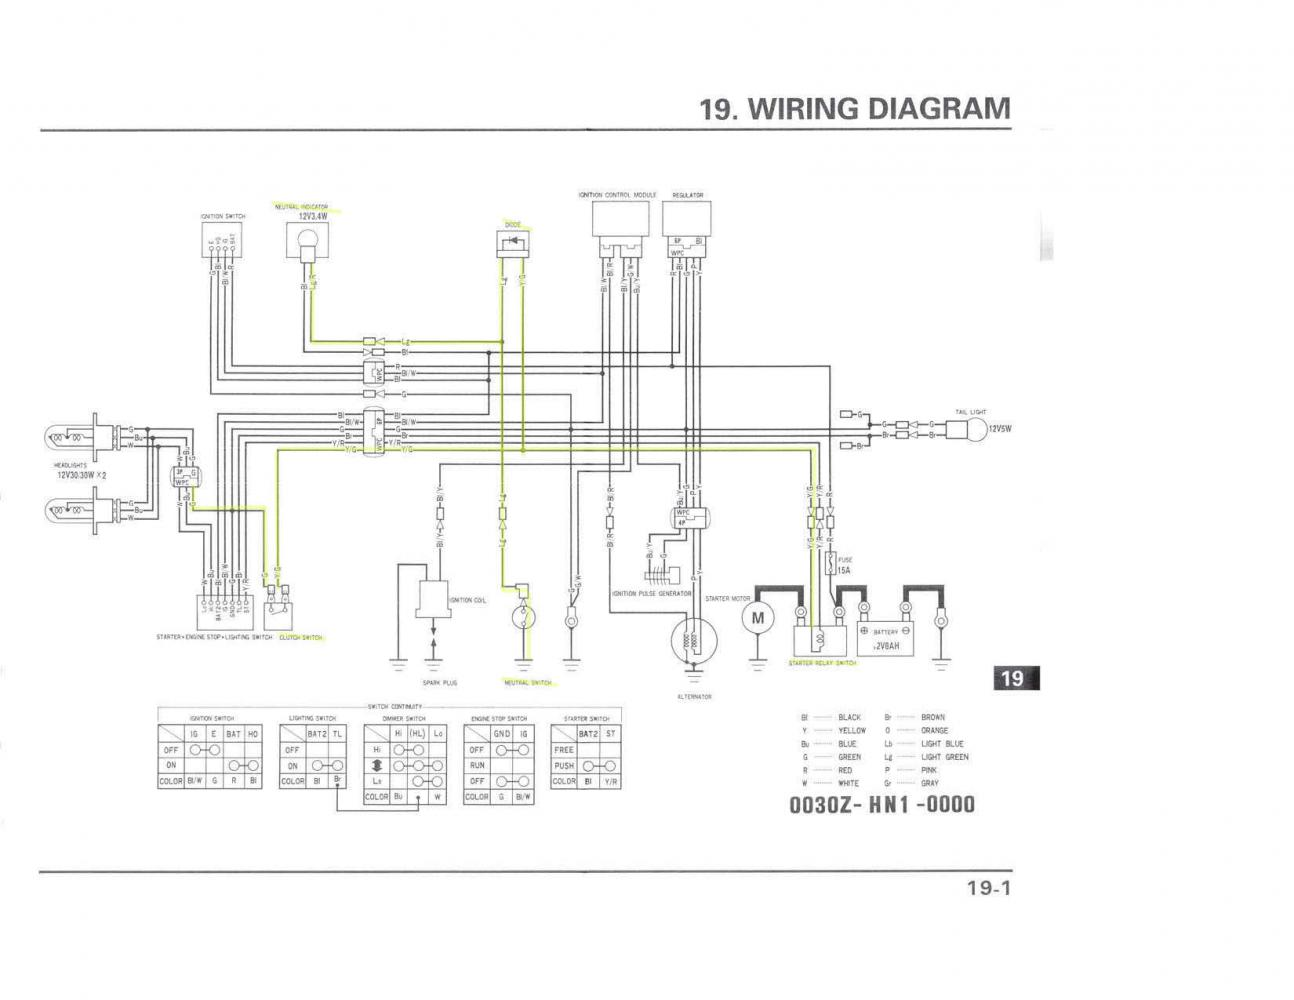 [DIAGRAM] Redcat 50cc Atv Wiring Diagram FULL Version HD